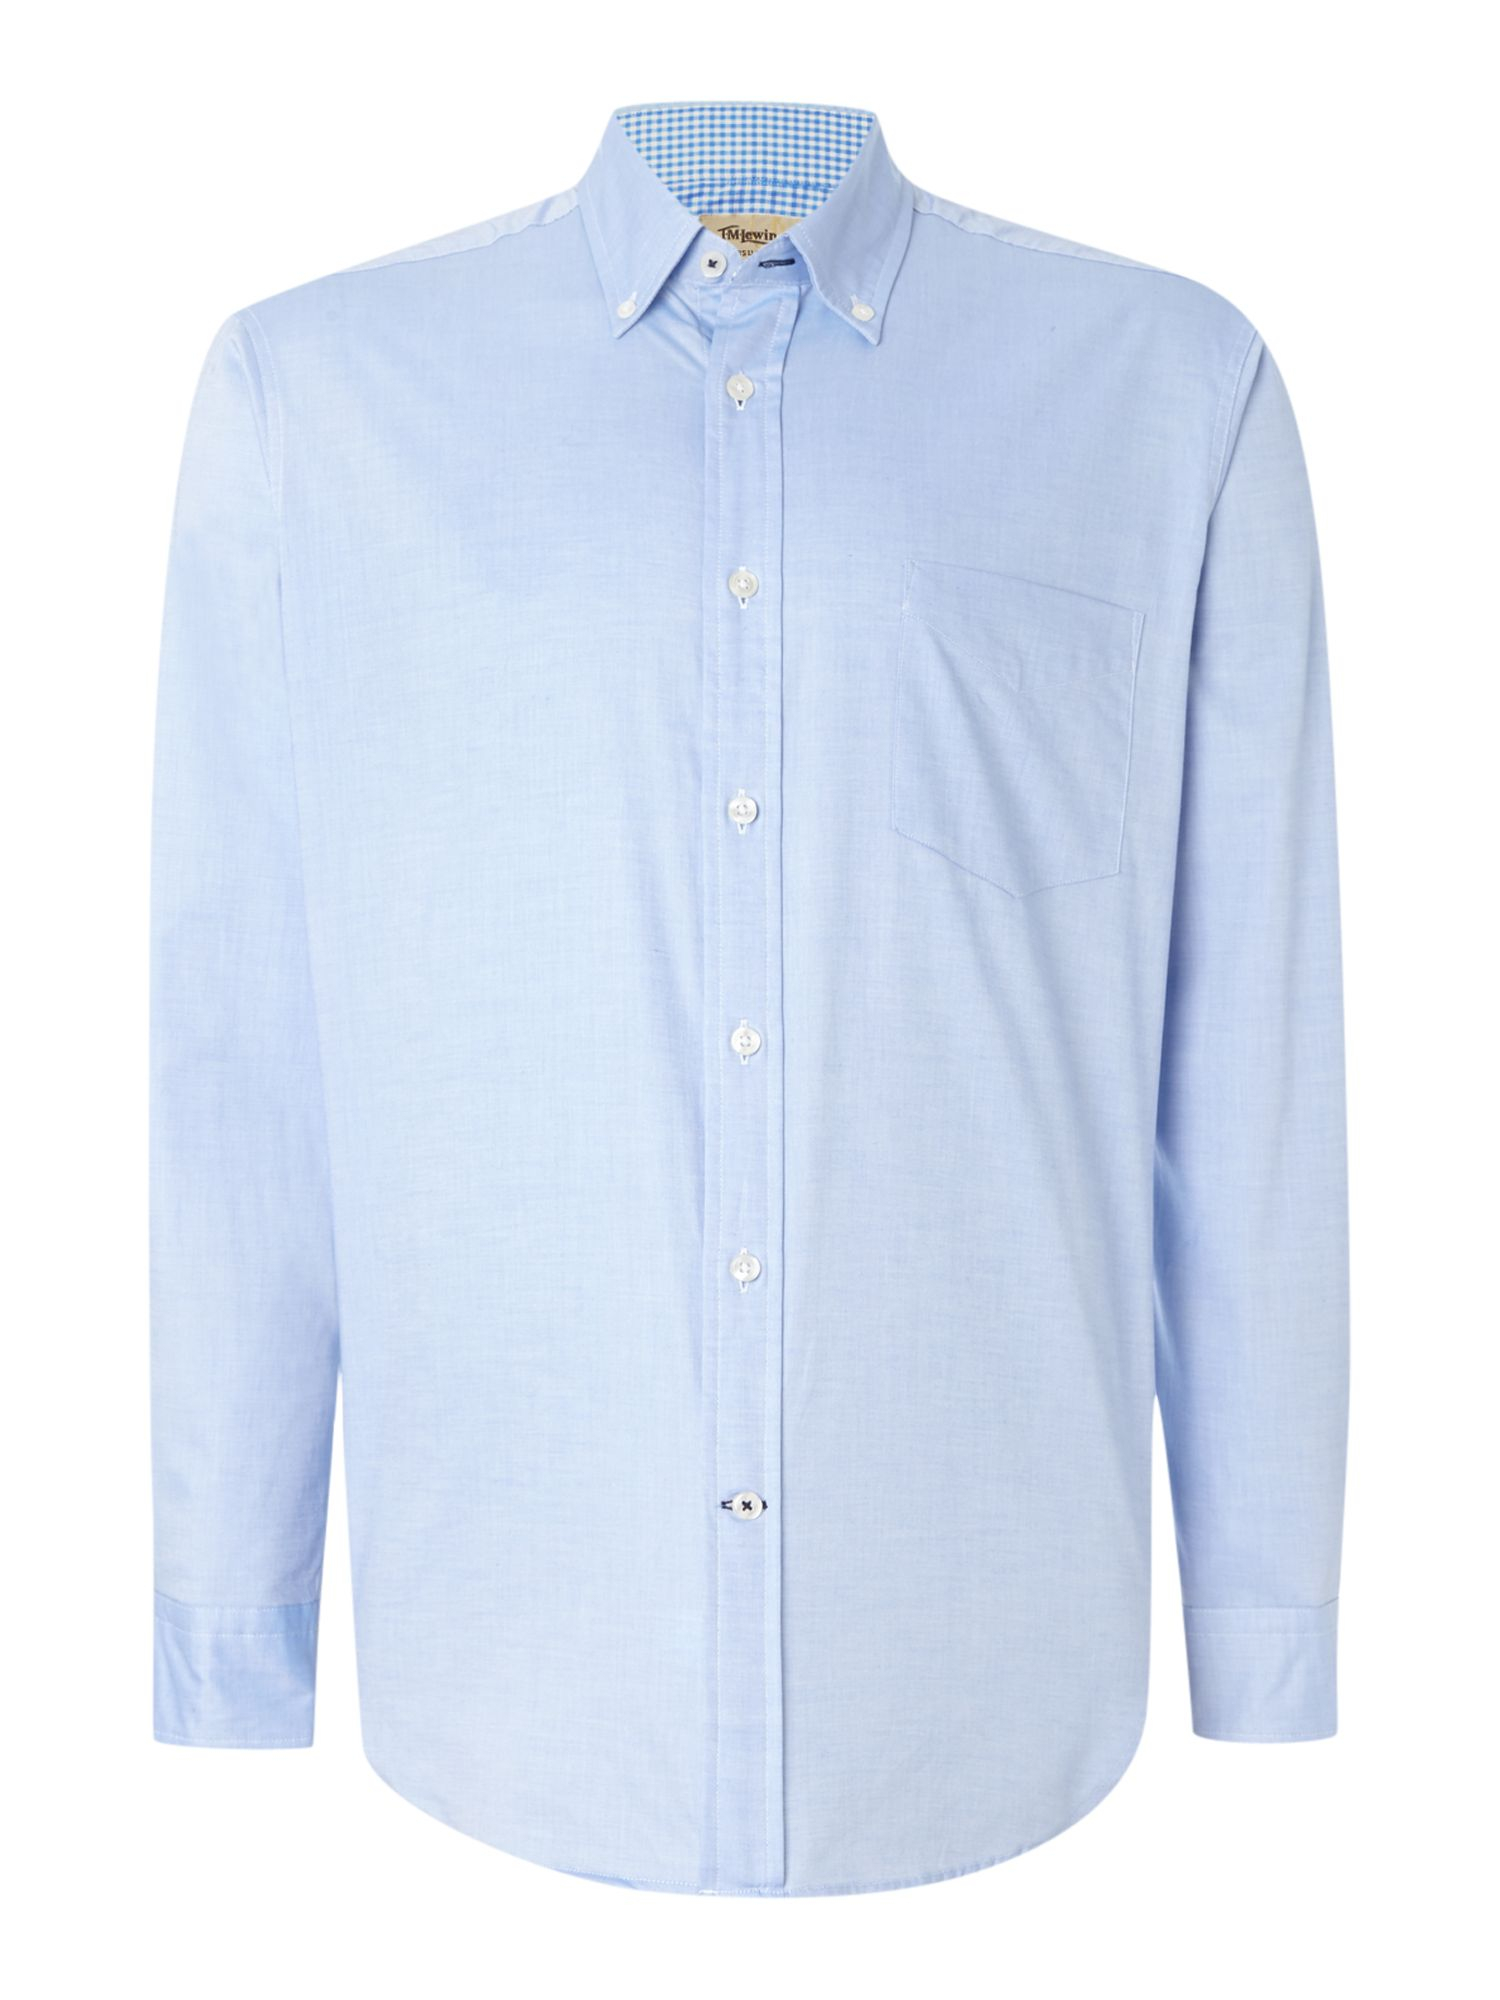 tm lewin oxford relaxed fit casual shirt in blue for men